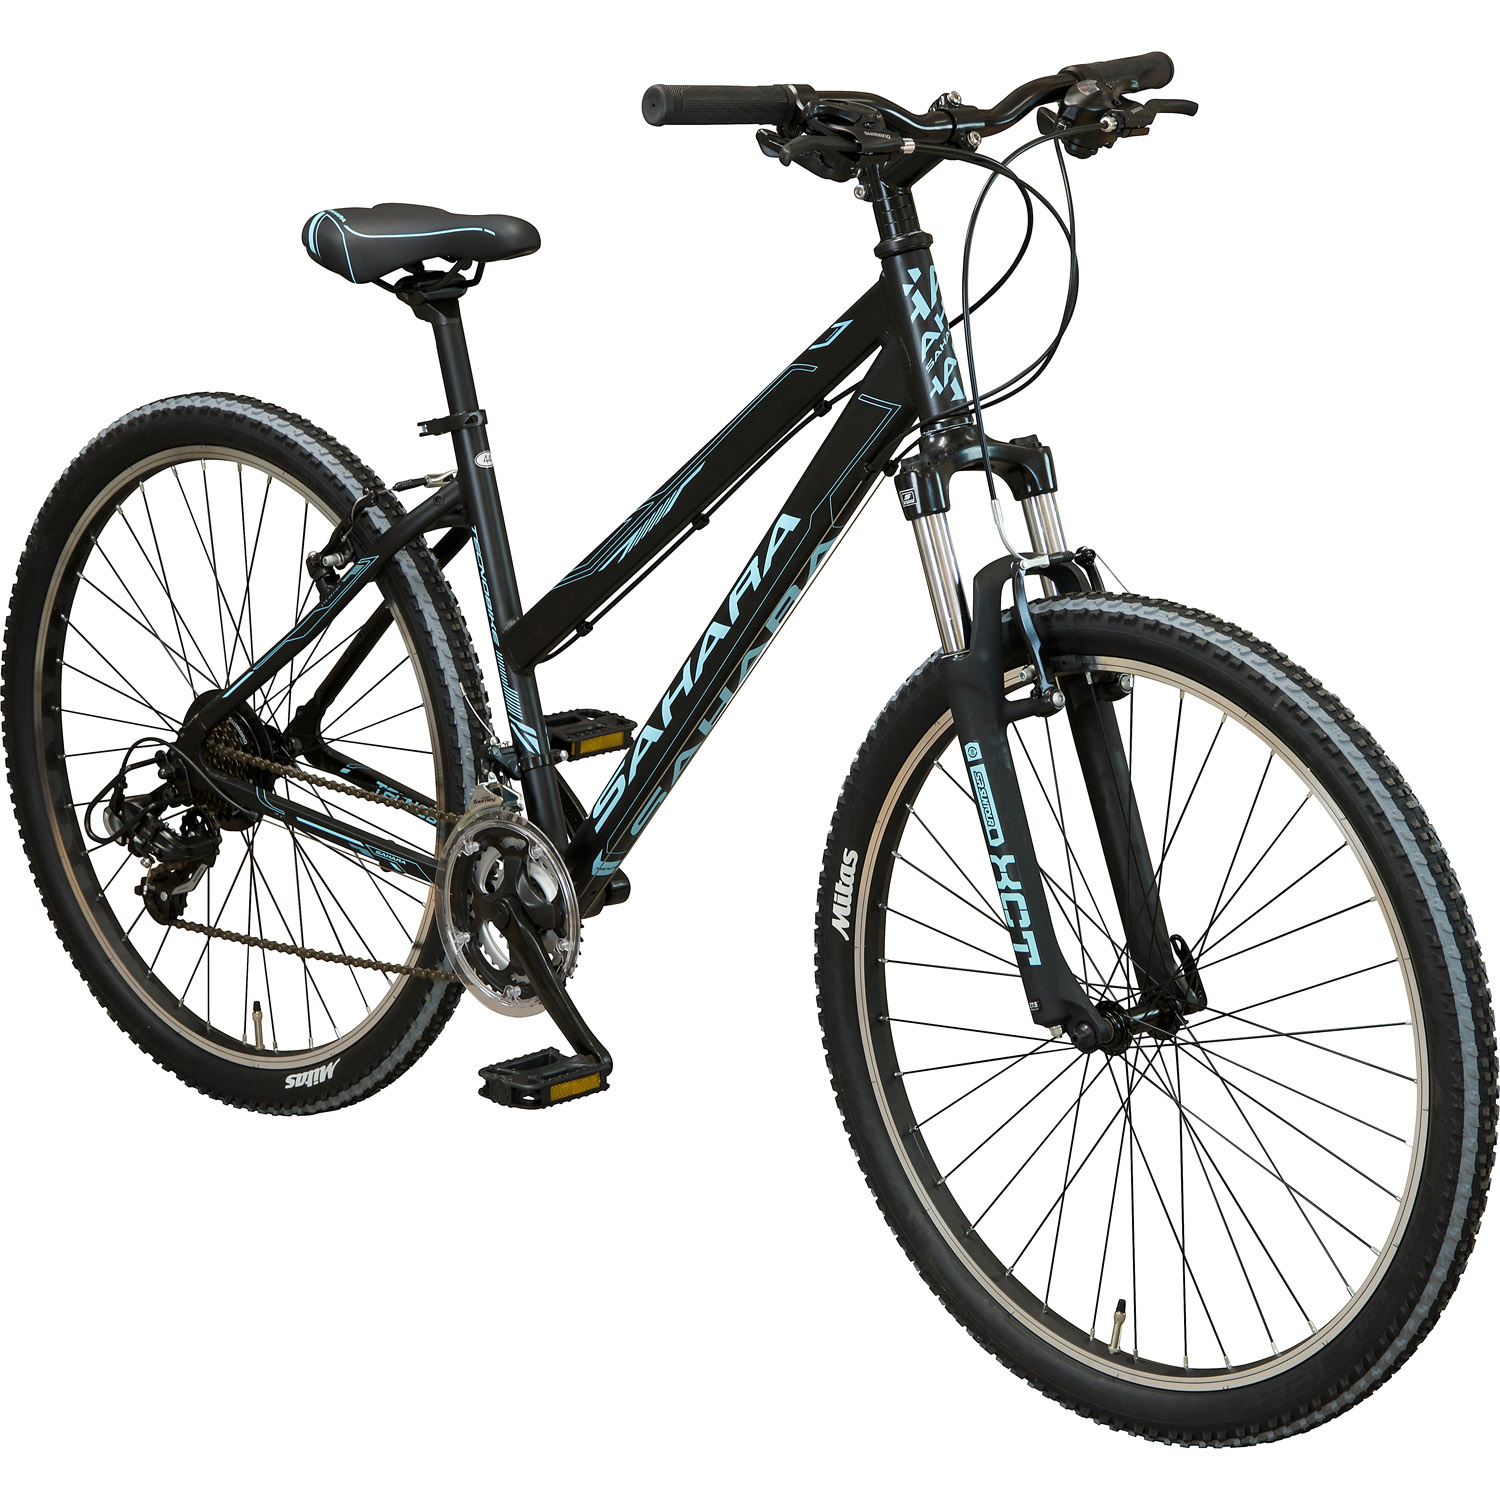 tecnobike sahara mountainbike 27 5 zoll hardtail 38 cm. Black Bedroom Furniture Sets. Home Design Ideas